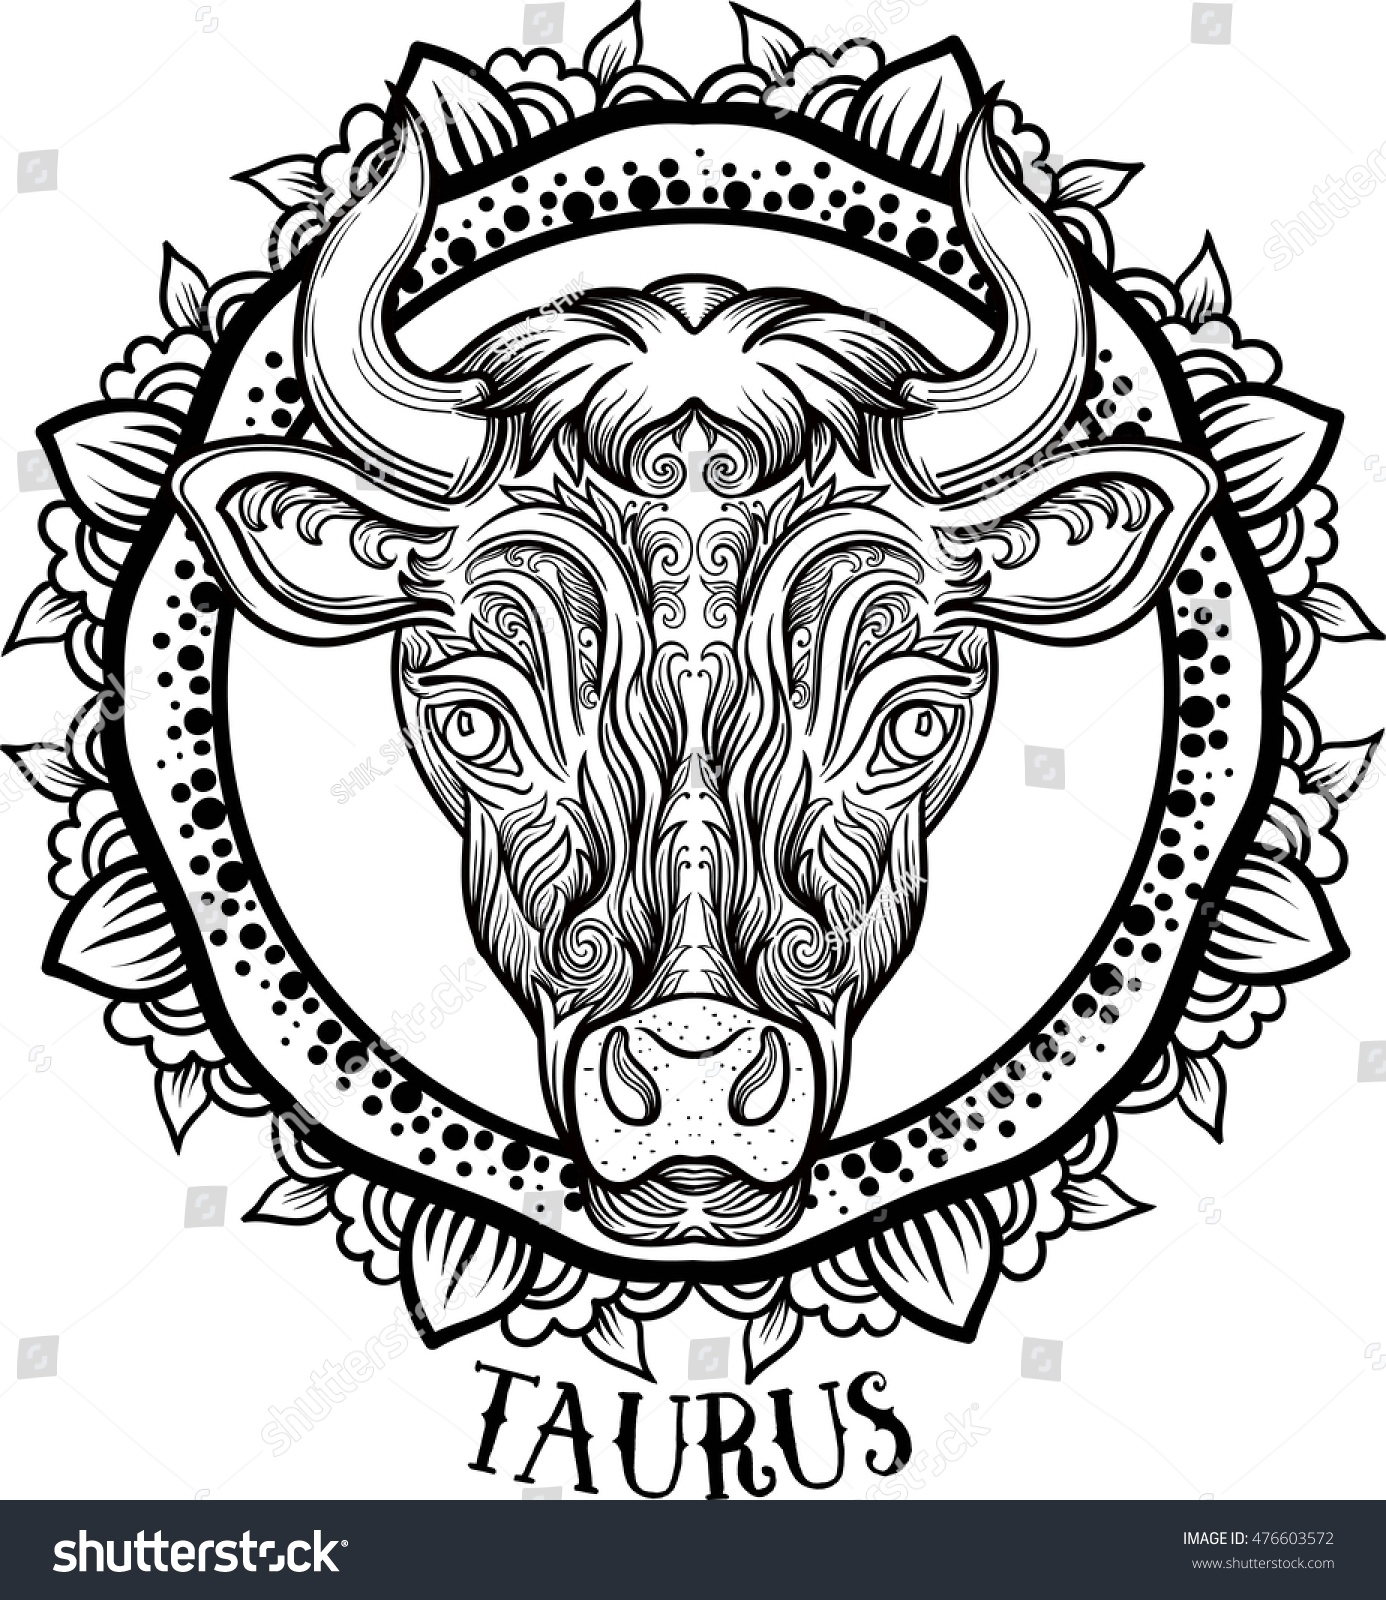 Detailed Taurus In Aztec Filigree Line Art Zentangle Style Tattoo Coloring Page For Adult